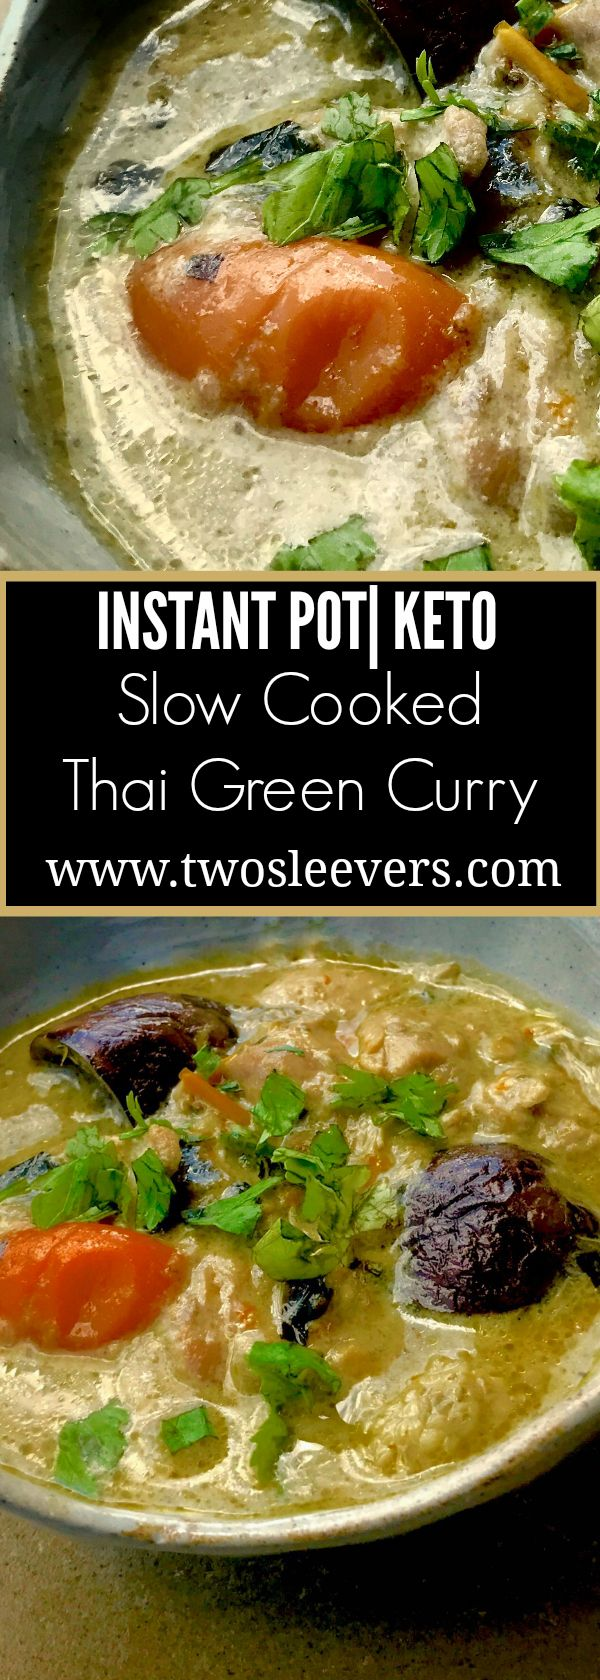 Easy, low carb, keto Thai food in your slow cooker or Instant Pot Slow Cooker. Thick, spicy, authentic Thai flavor at home.